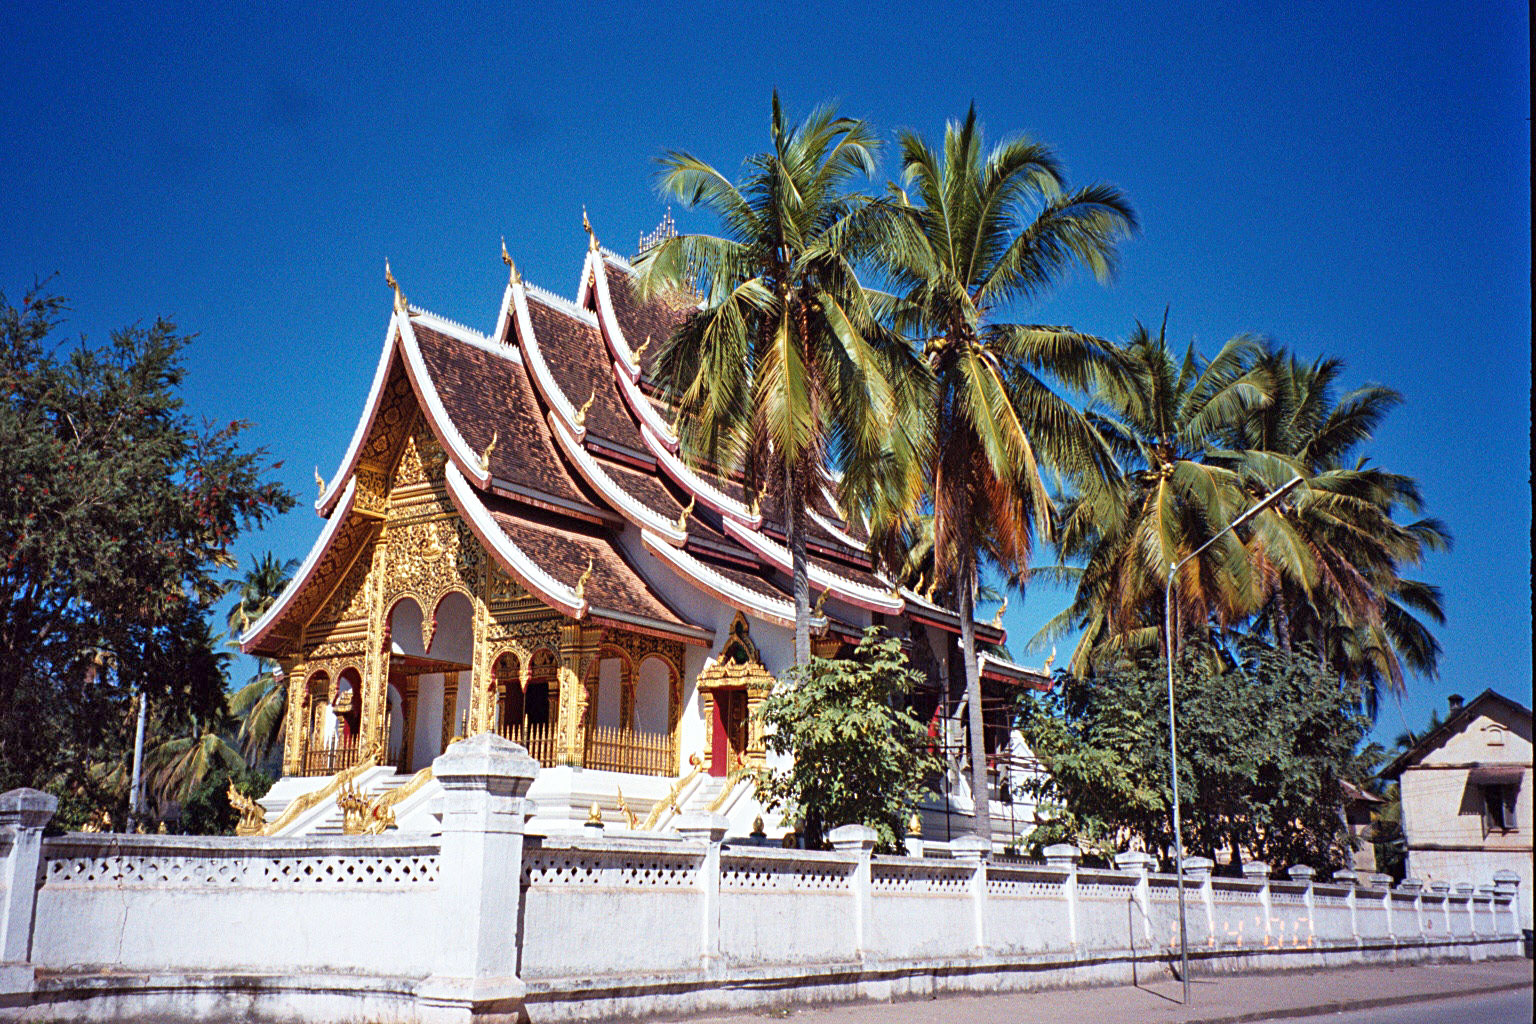 Wat Mai Suwannaphumaham is one of many temples and wats in Luang Prabang